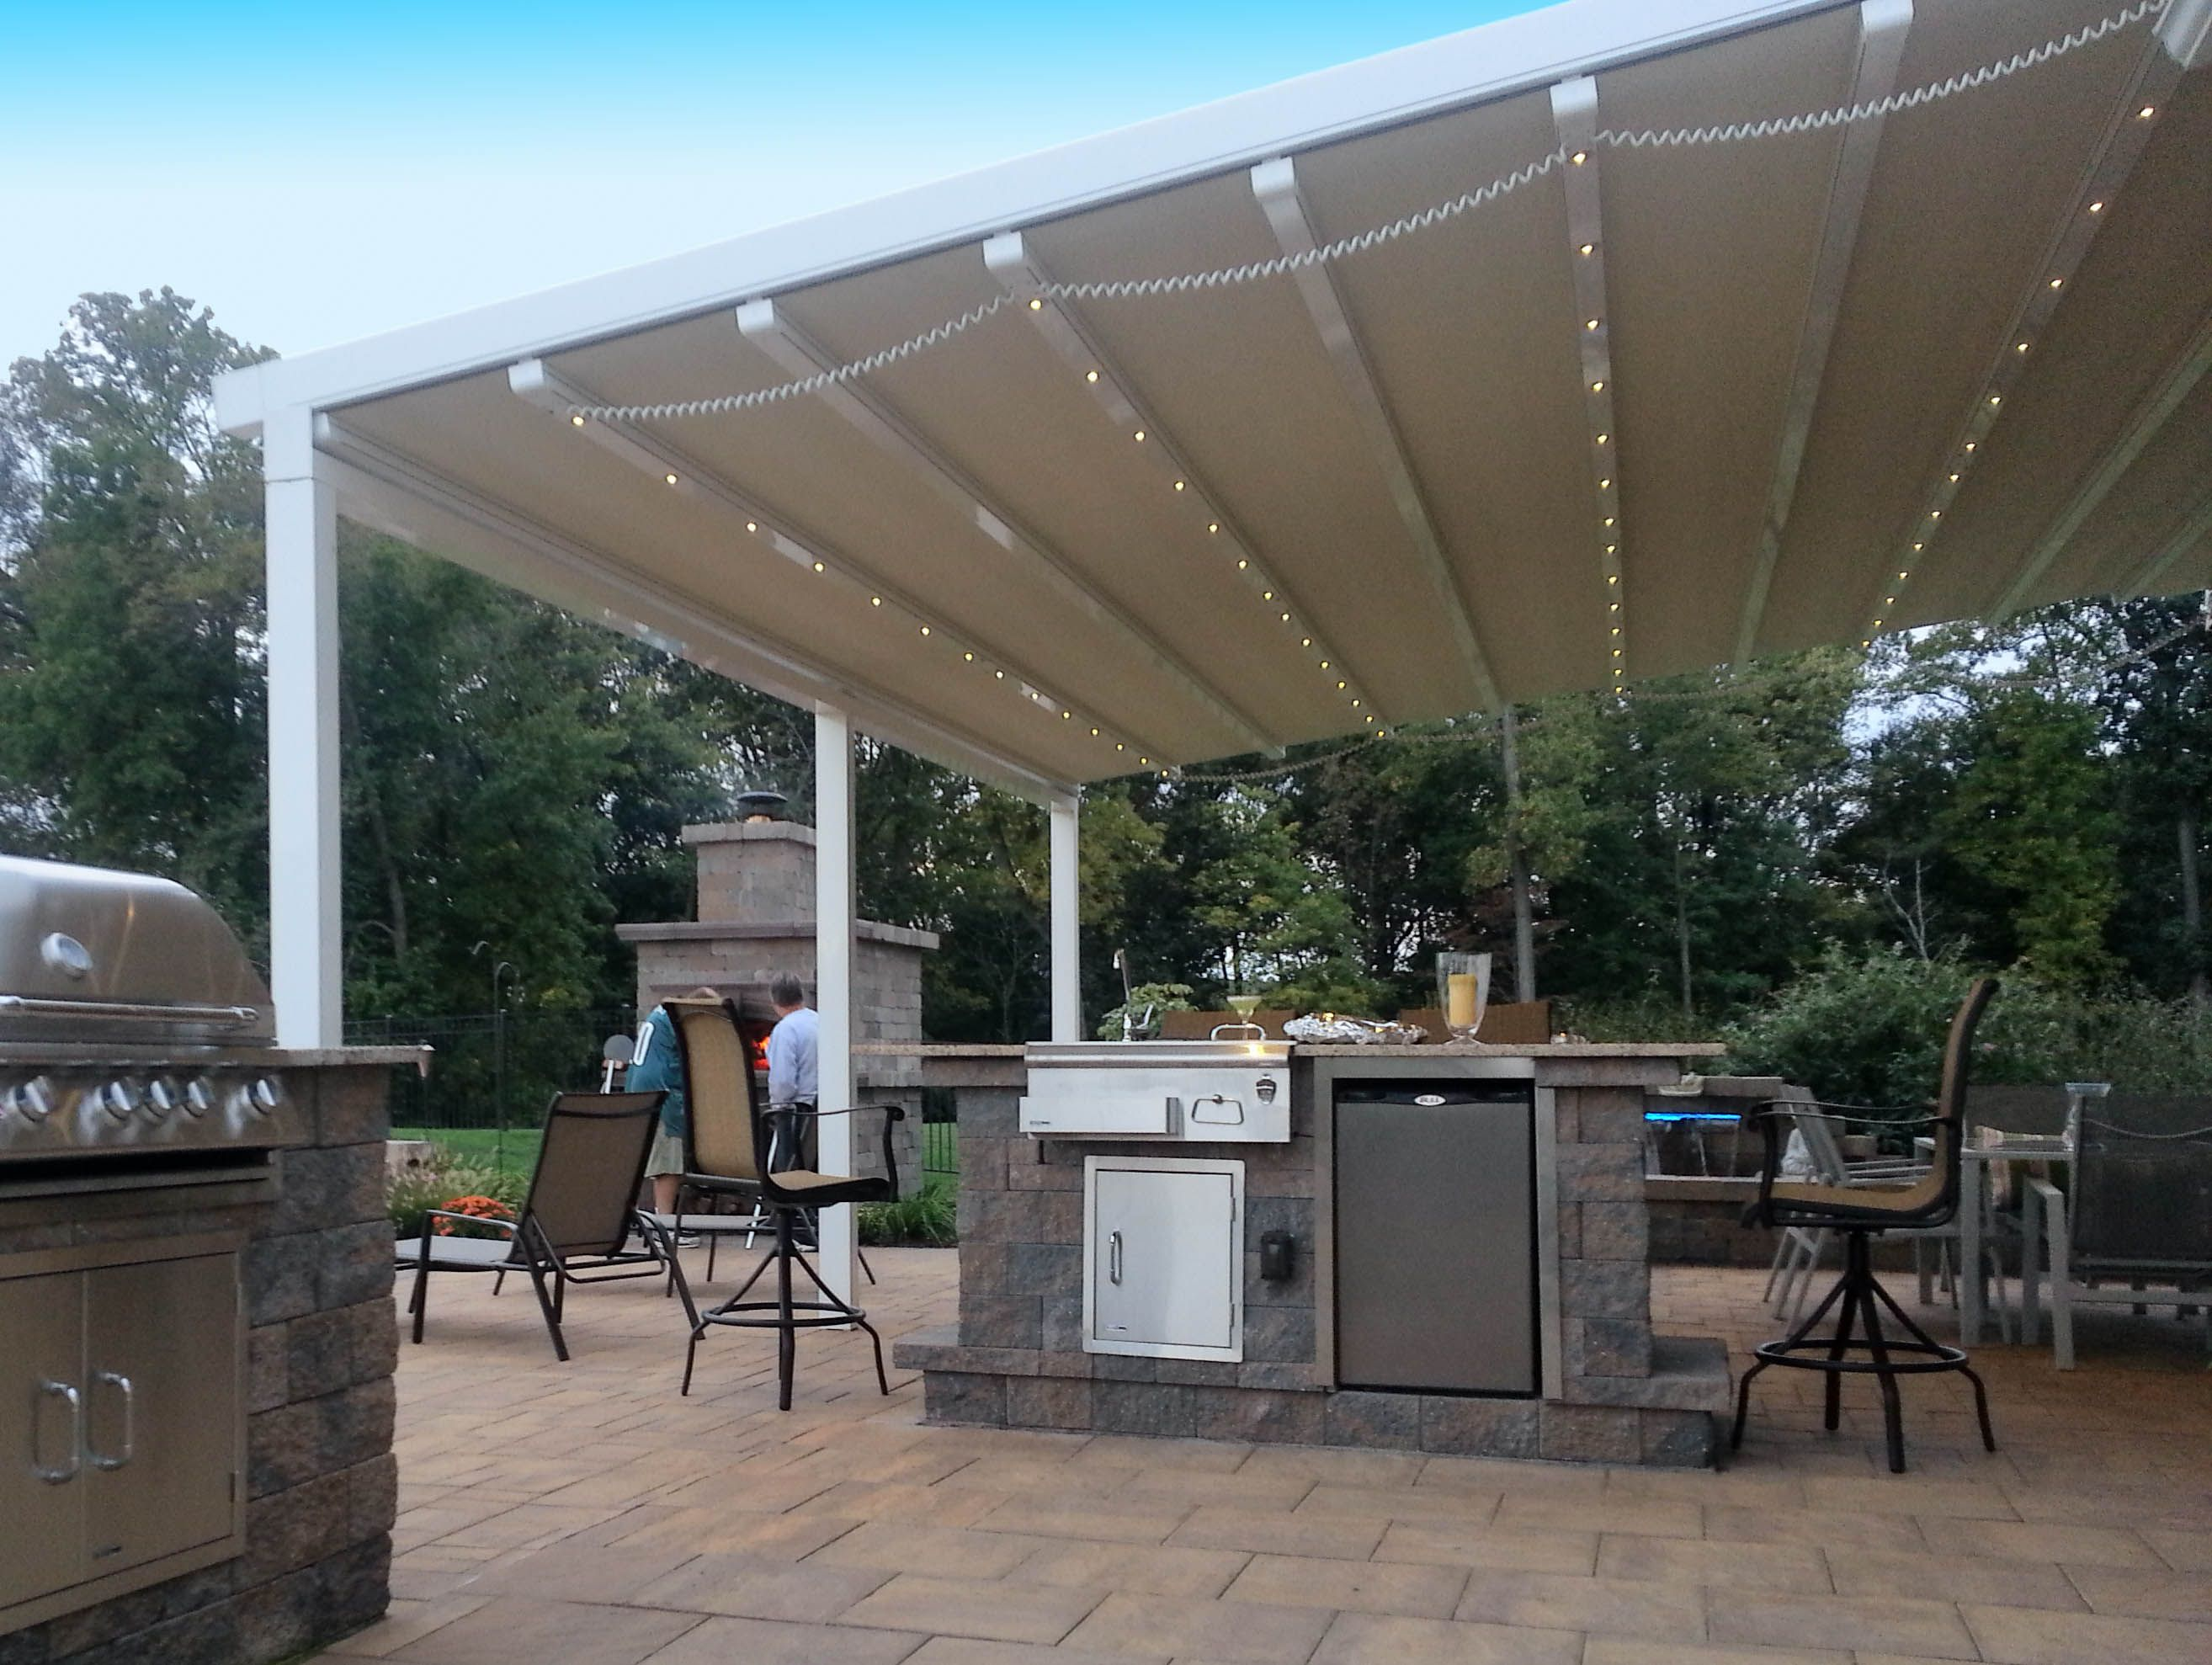 Manual And Motorized Retractable Awnings Awning Works Inc Retractable Pergola Waterproof Pergola Covers Covered Pergola